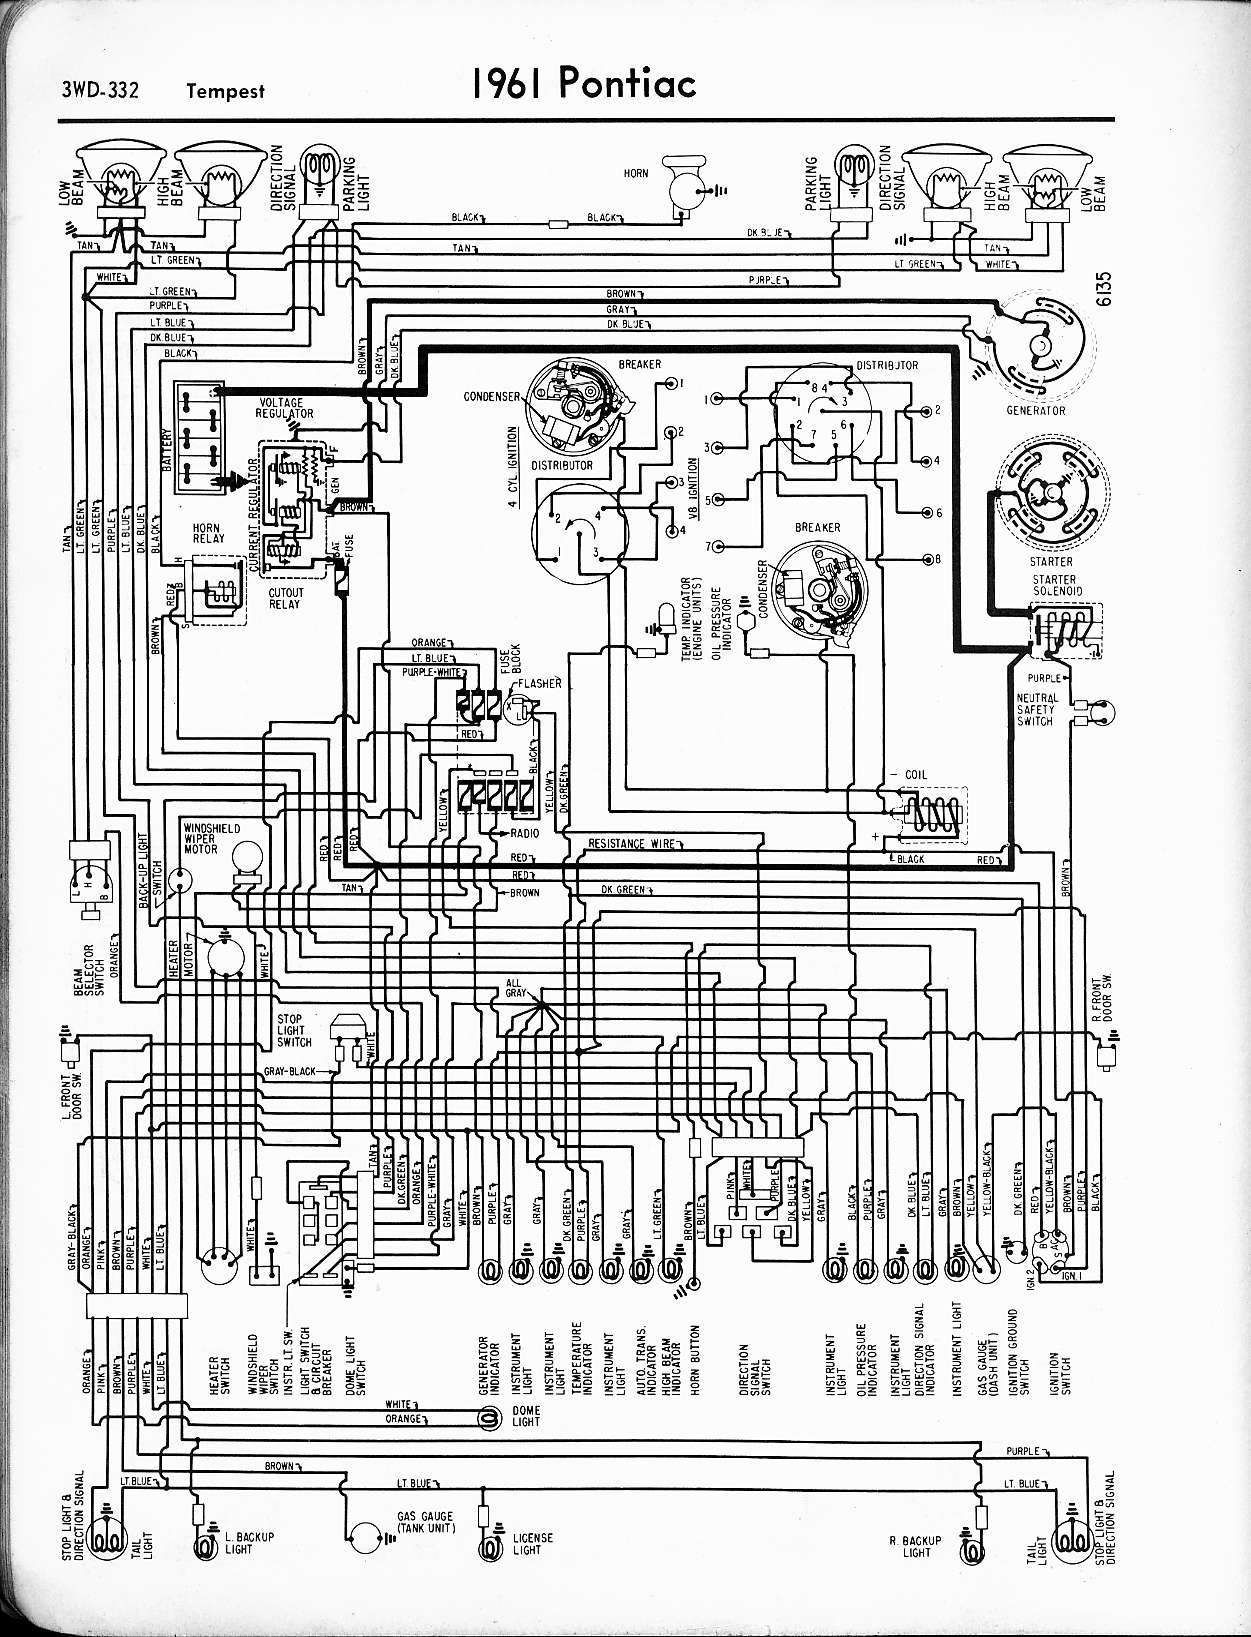 hight resolution of 1960 pontiac wiring diagram wiring diagram meta 2000 pontiac montana wiring diagram 1960 pontiac wiring